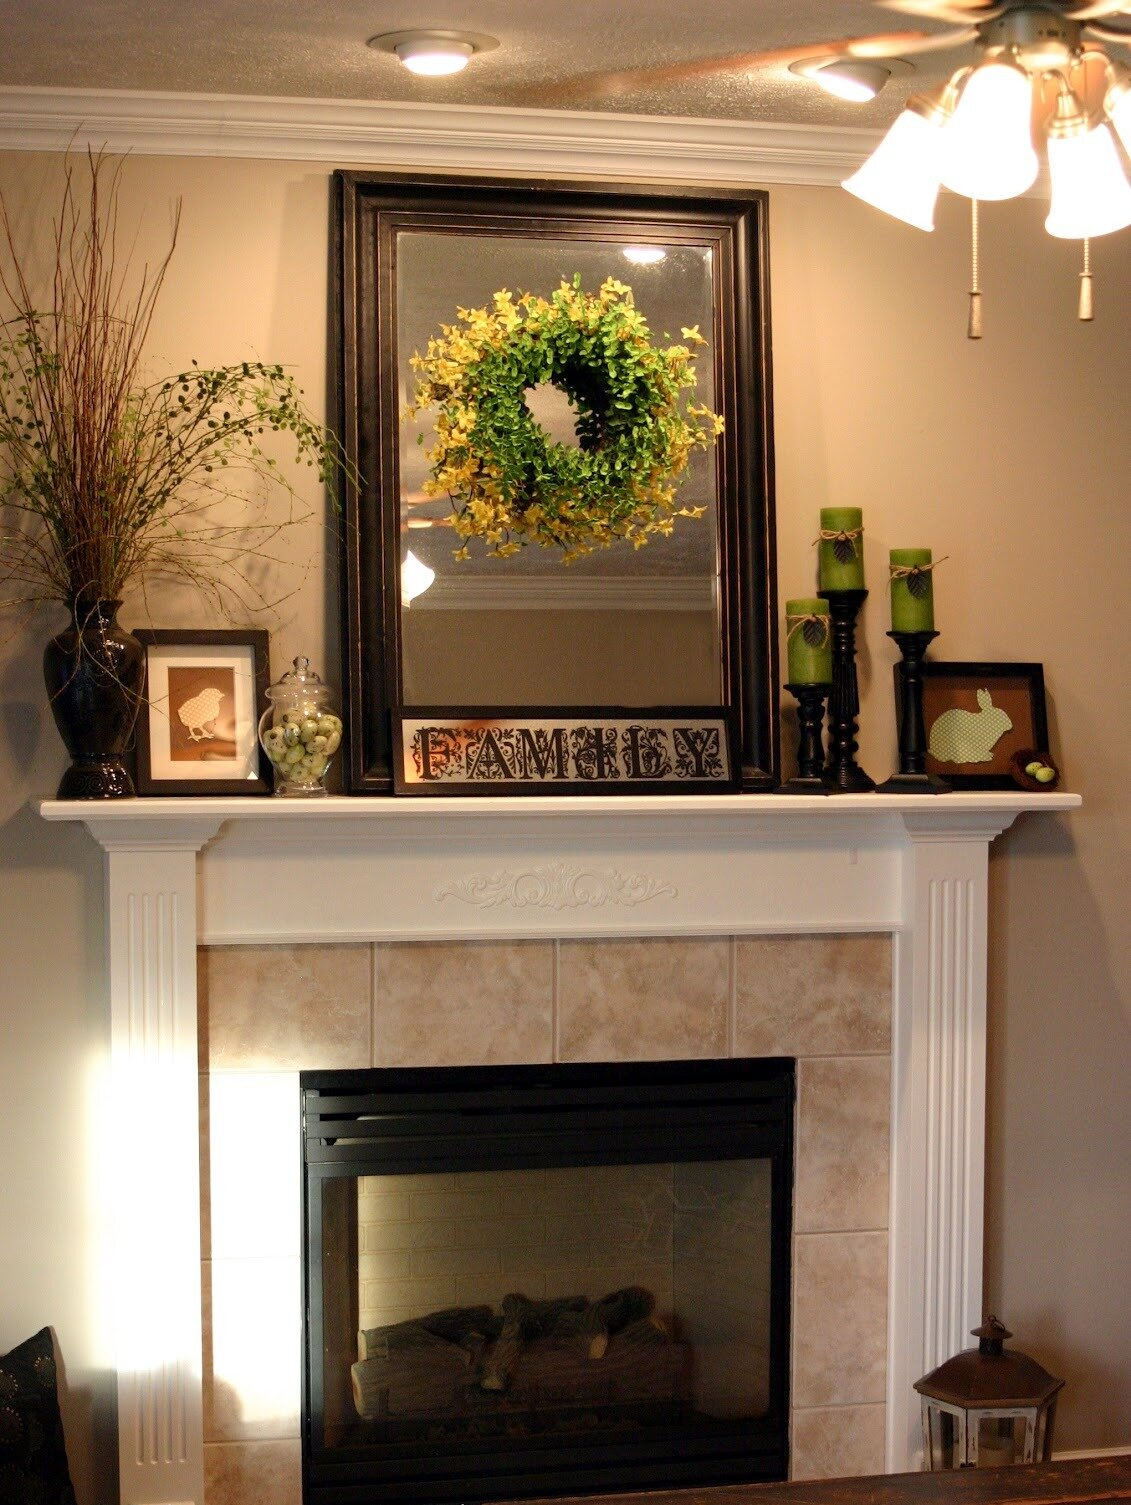 Fireplace fireplace mantel decor decorative fireplace for How to decorate a fireplace for christmas